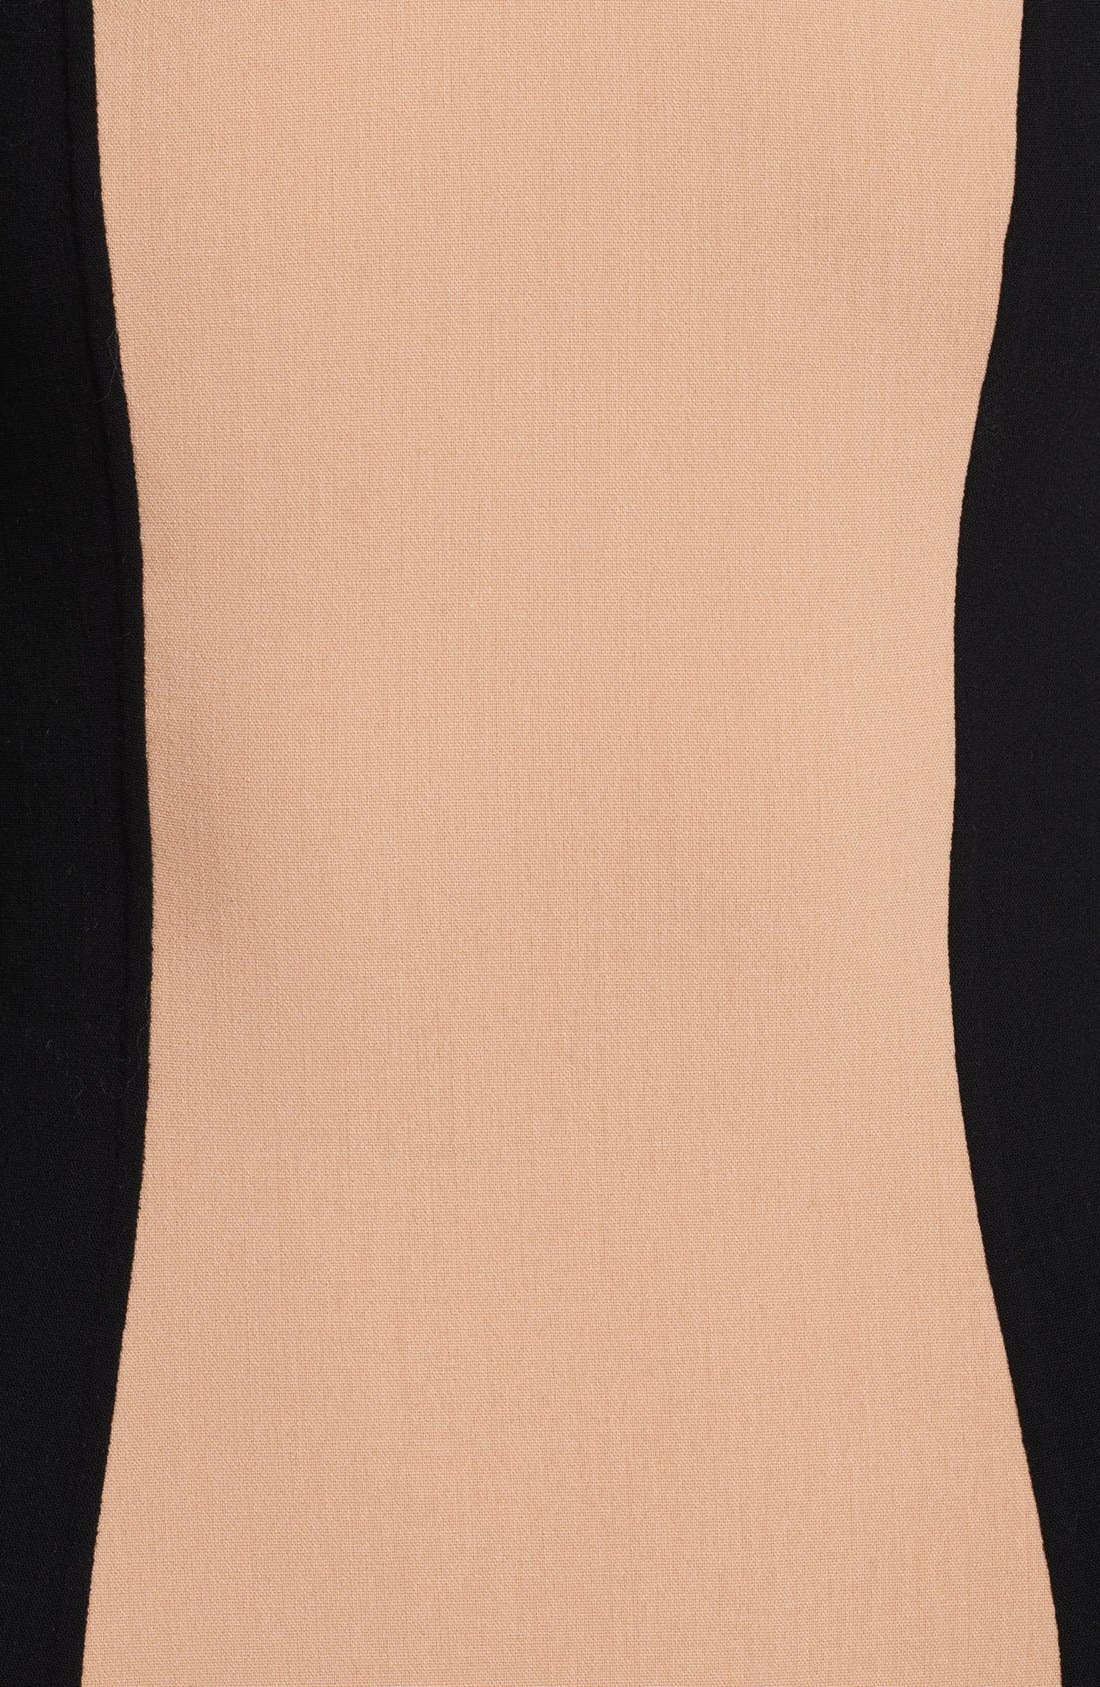 Alternate Image 2  - Michael Kors Colorblock Crepe Dress